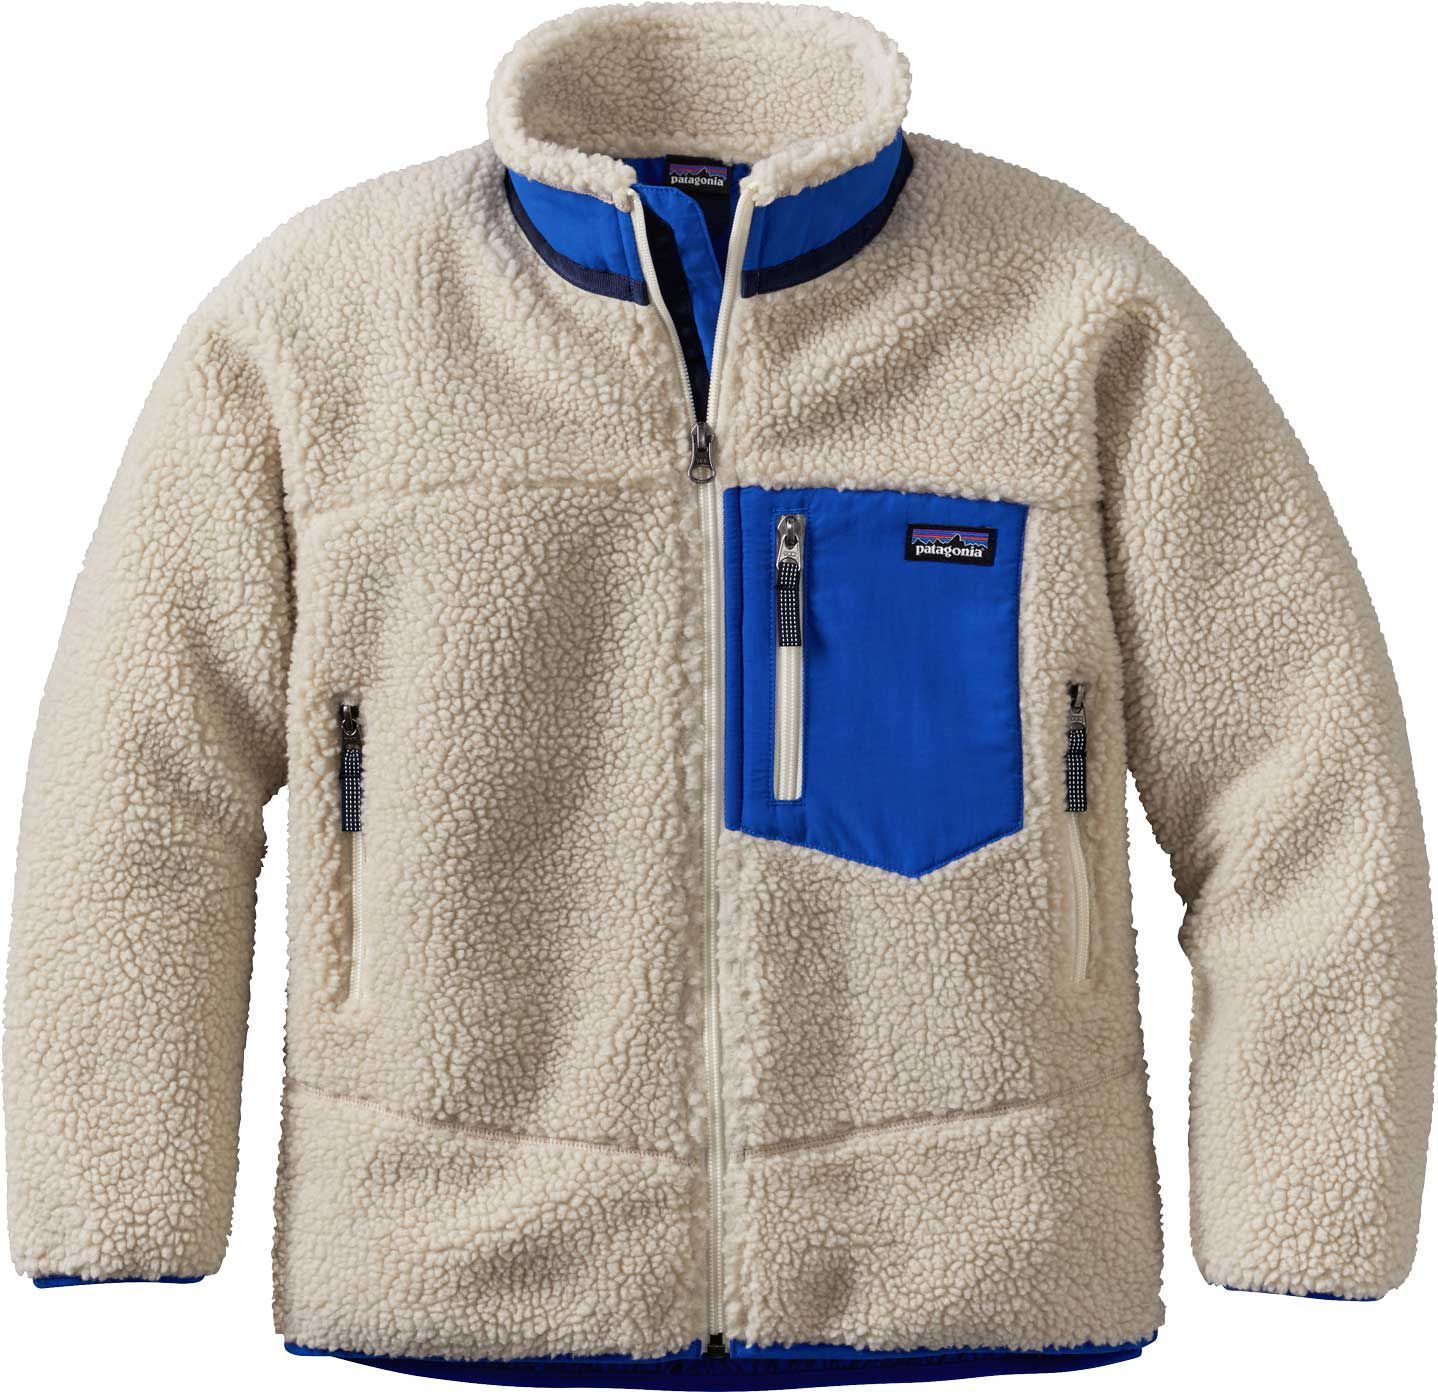 Boys' Fleece Jackets Patagonia Jackets | DICK'S Sporting Goods